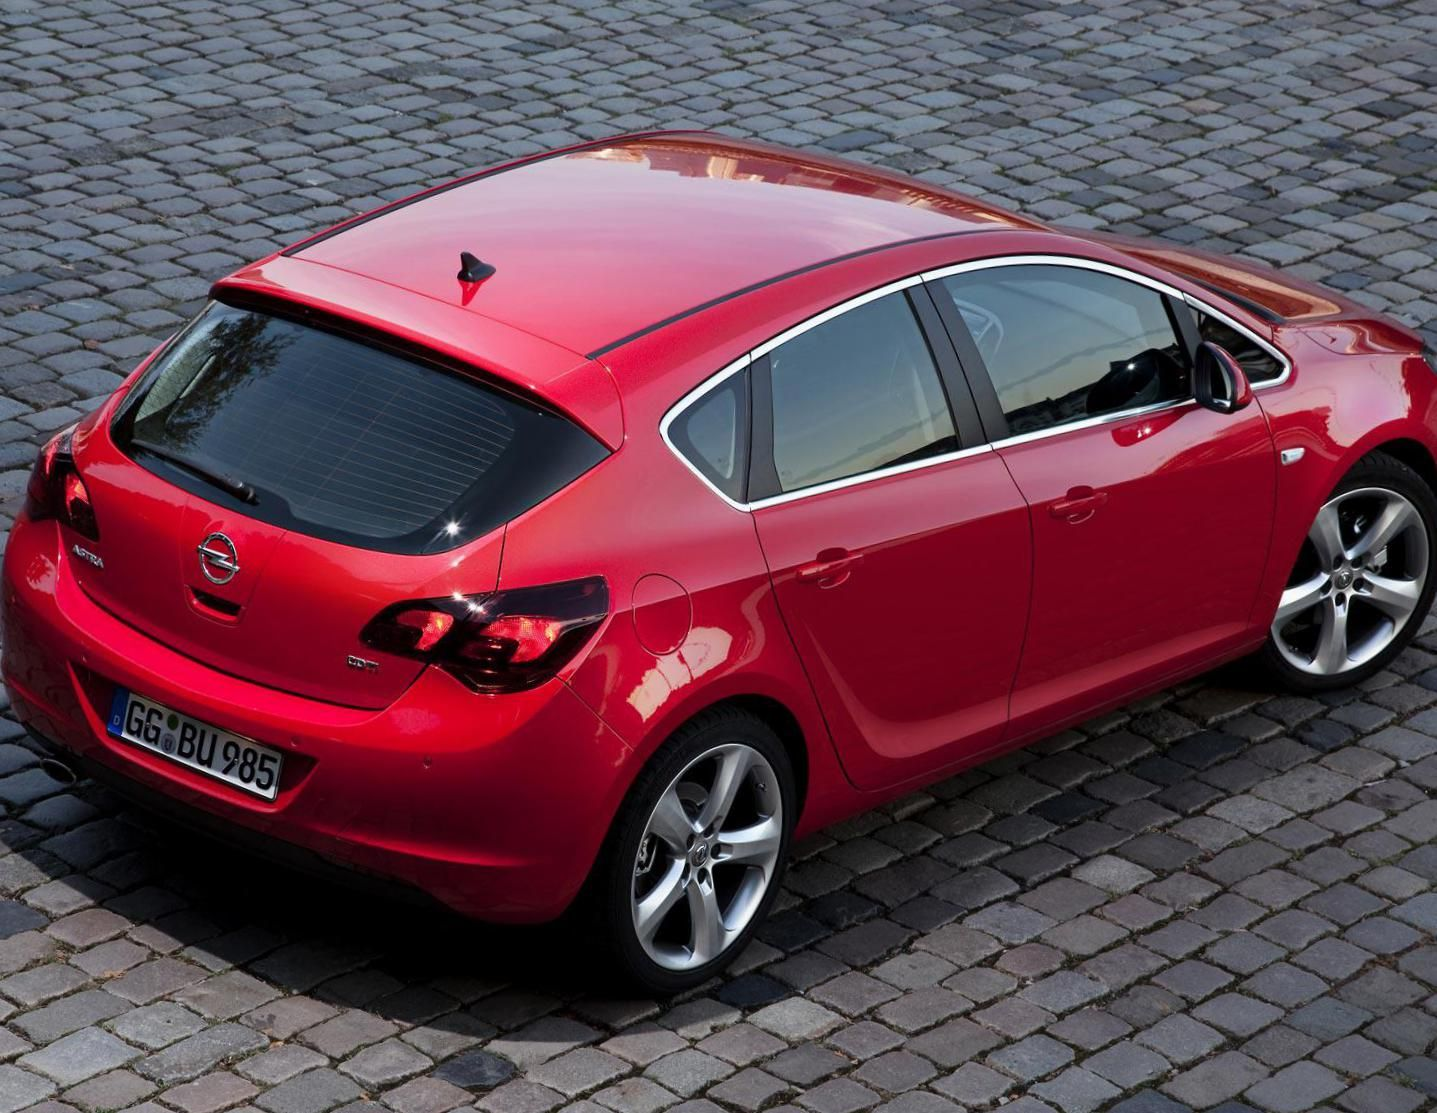 Opel Astra J Hatchback Photos And Specs Photo Opel Astra J Hatchback Reviews And 22 Perfect Photos Of Opel Astra J Hatchback Hatchback Opel Car Model